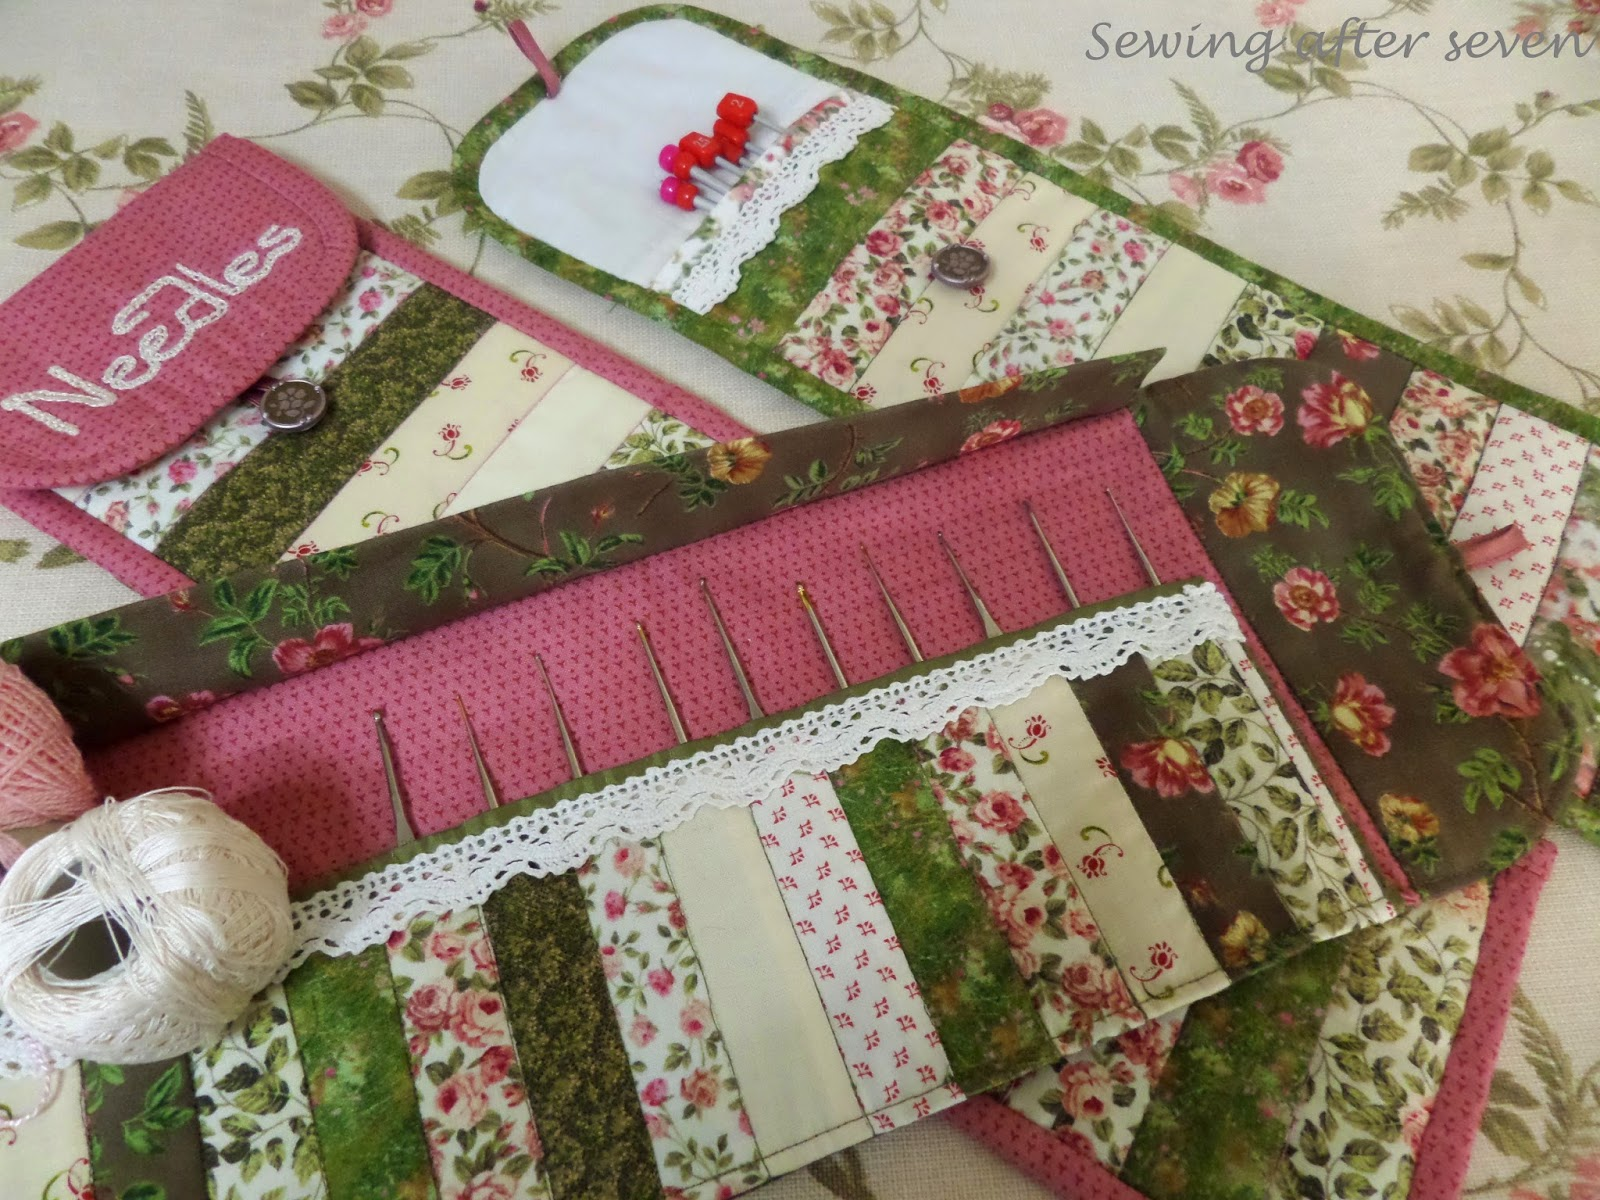 Sewing After Seven: Crochet hook case and Giveaway winner